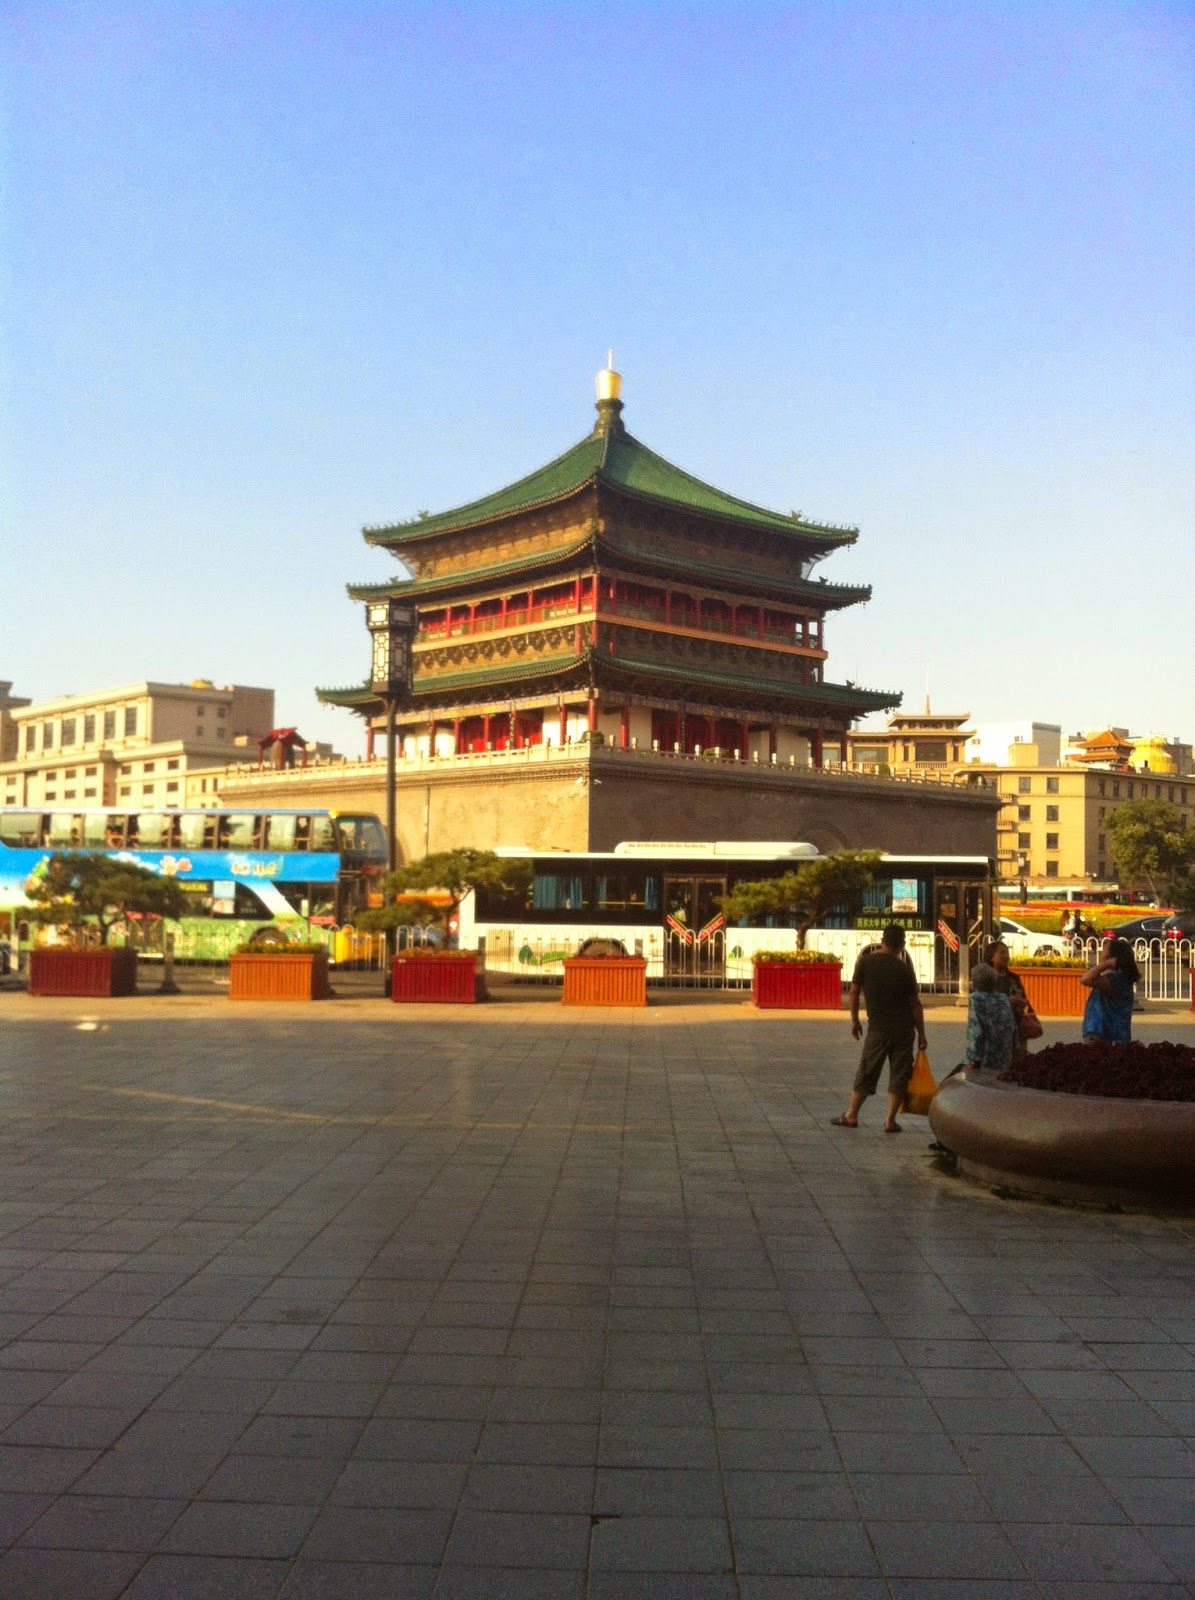 The Xi'an bell tower during the day